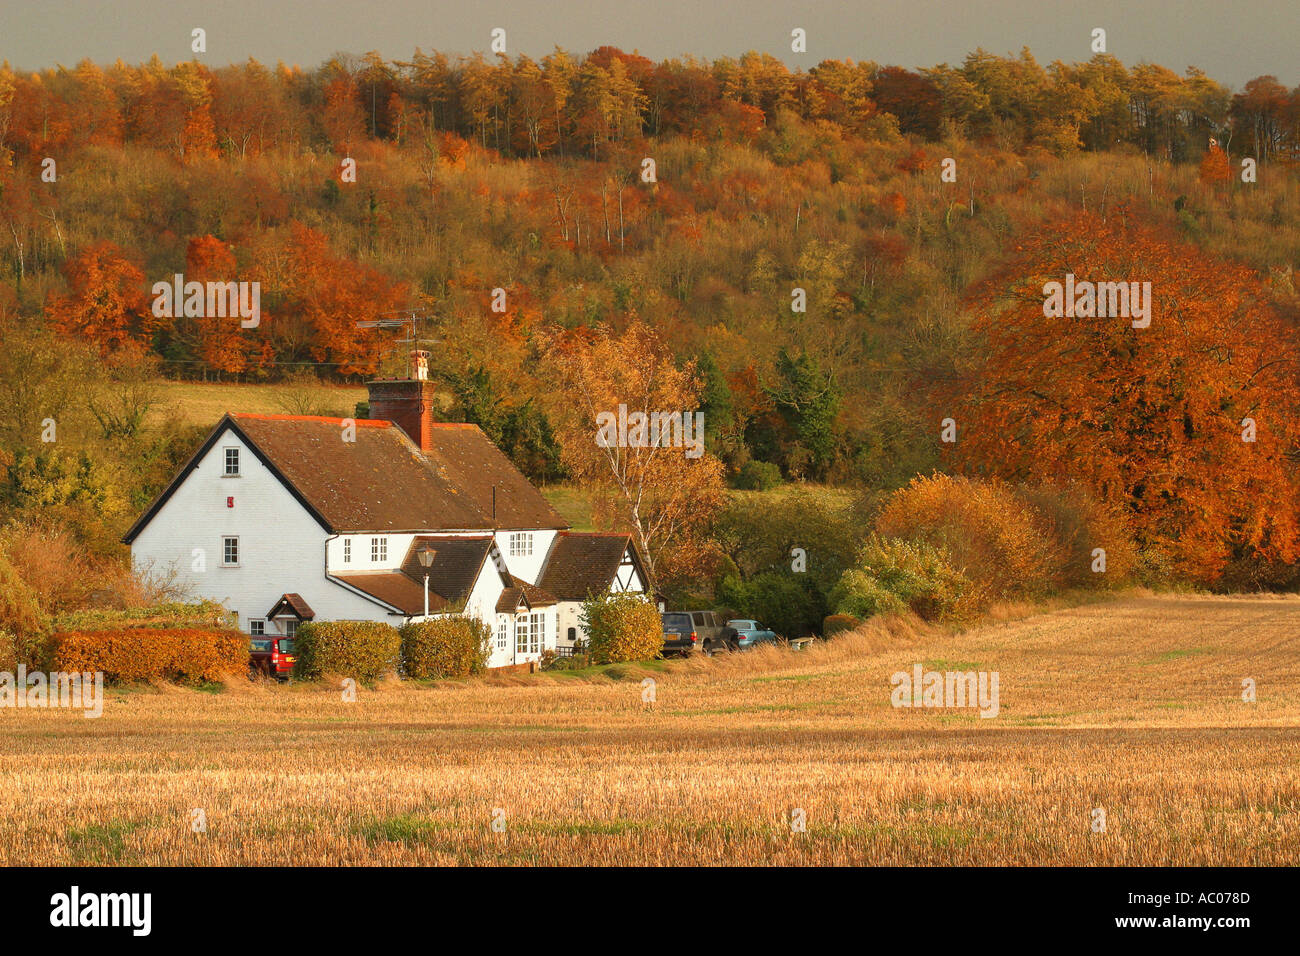 Farmhouse in the Chilterns - Stock Image